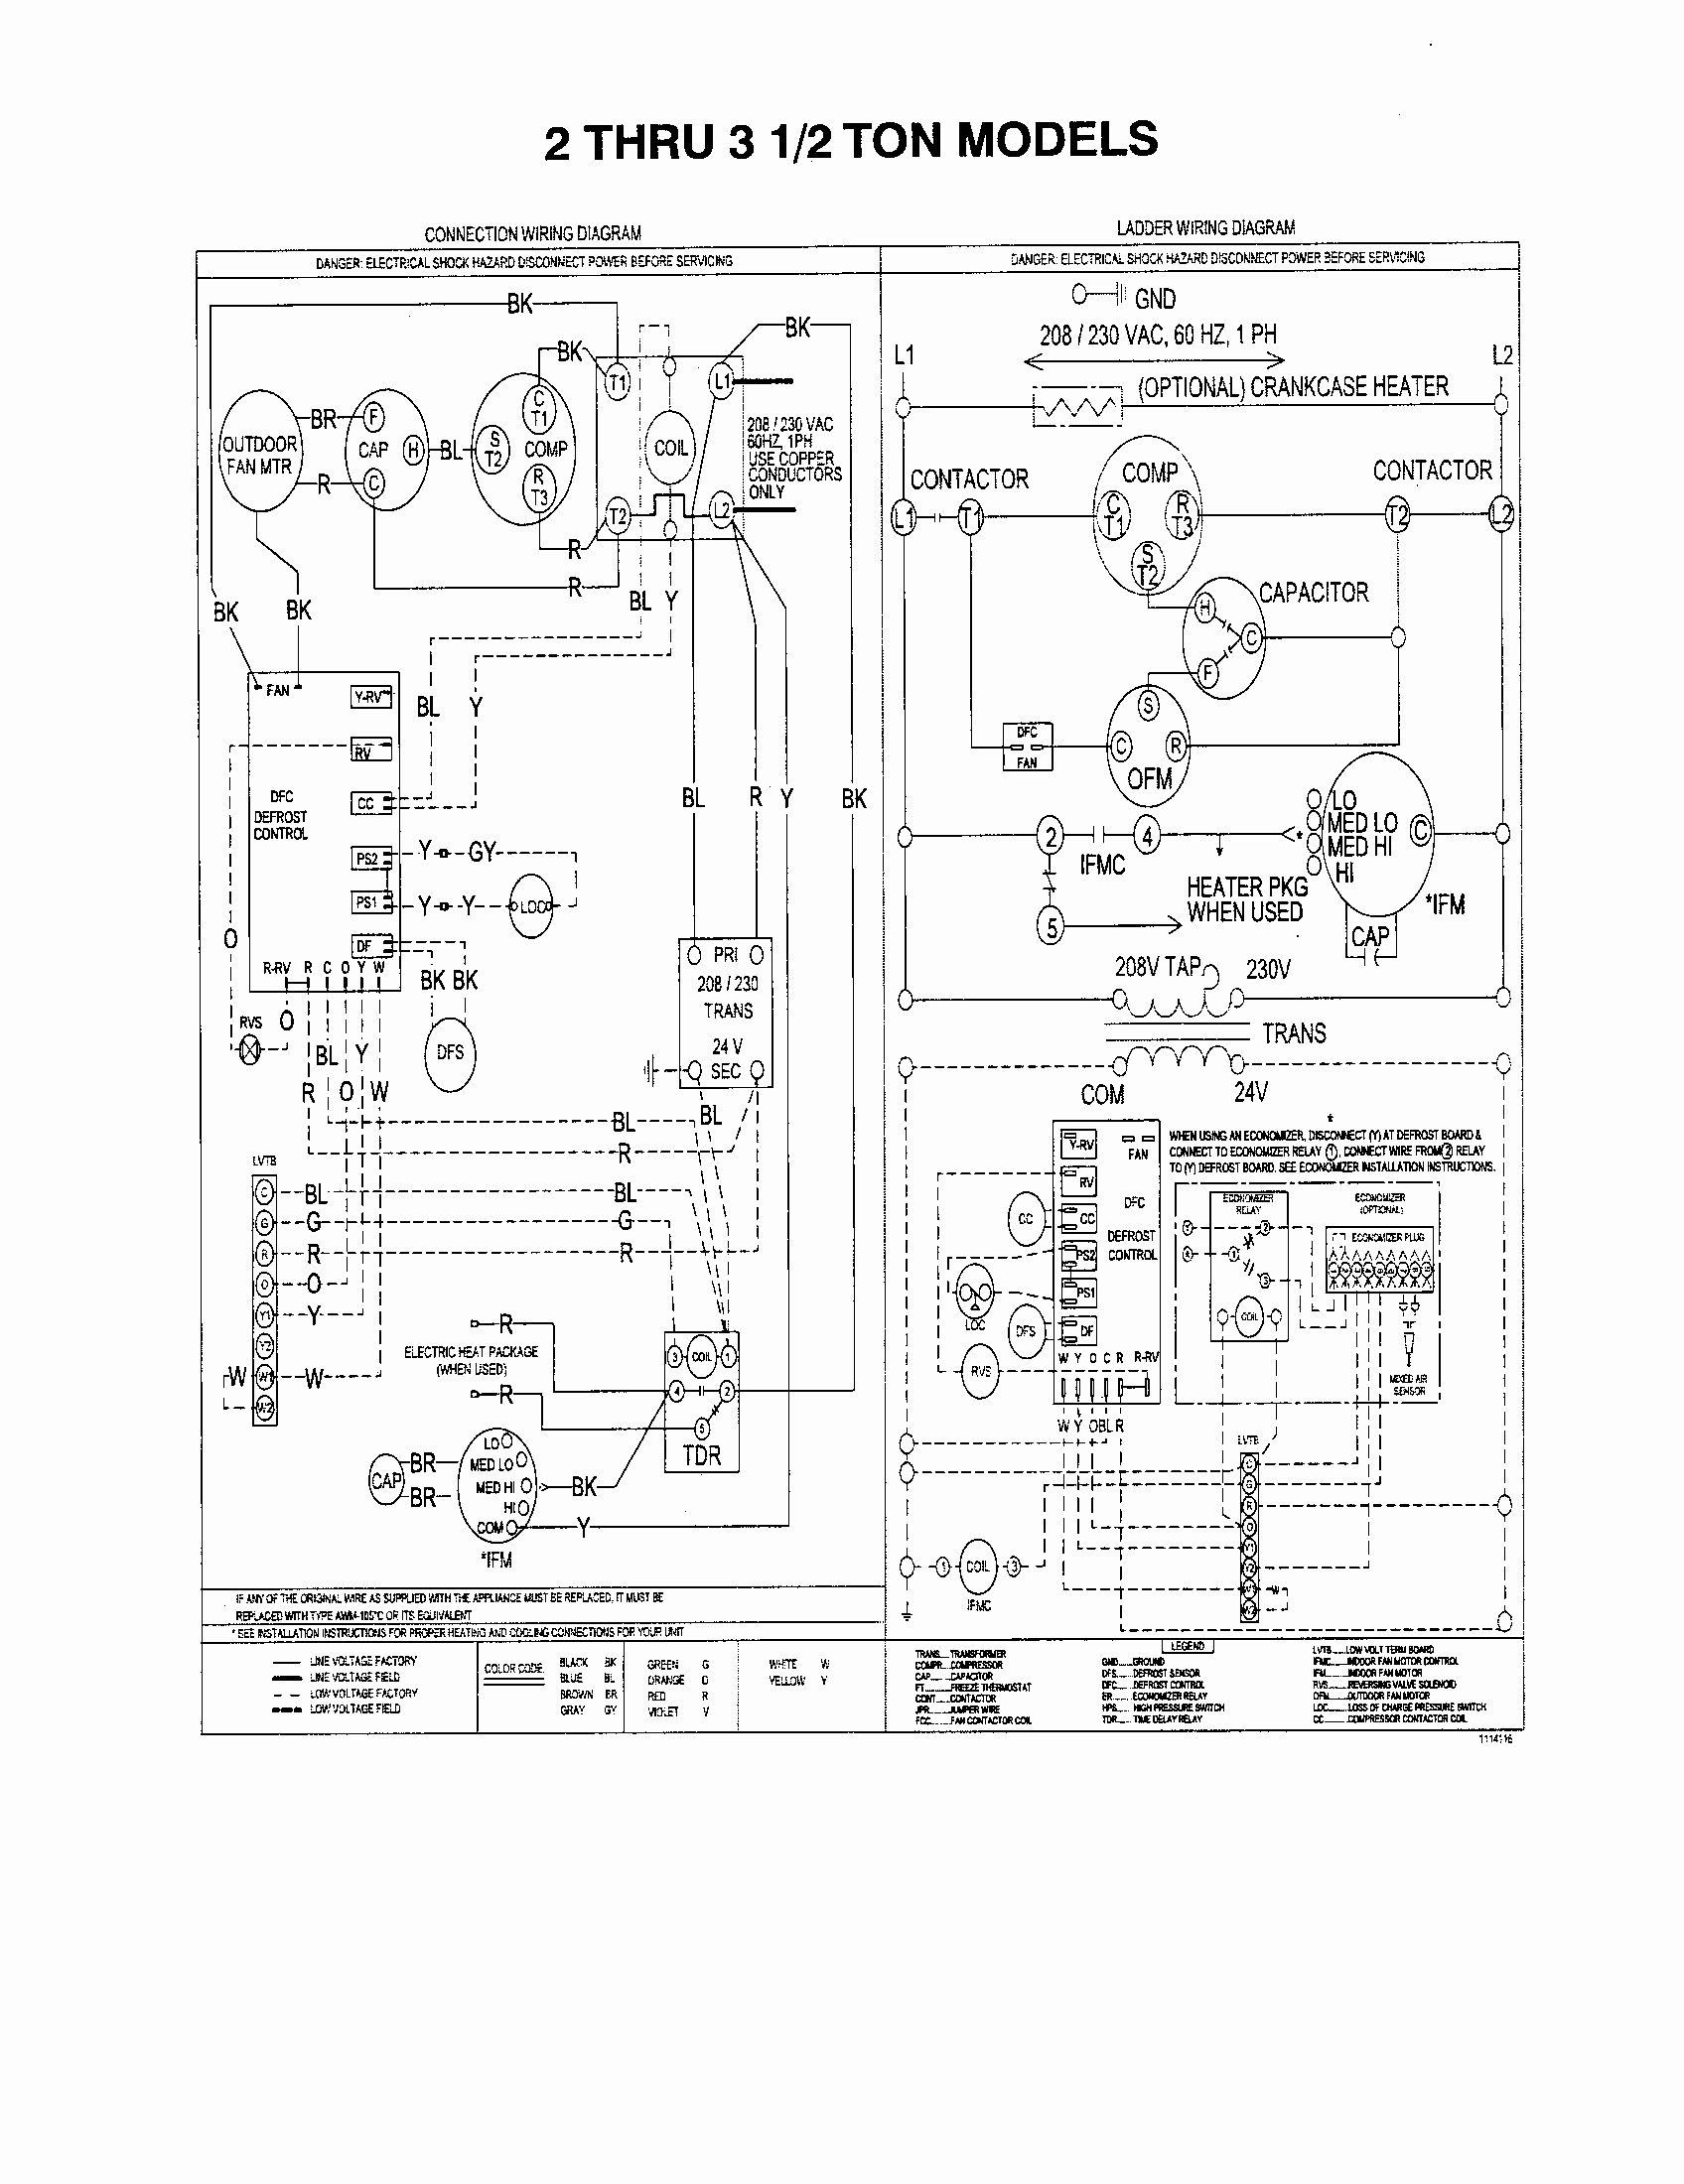 Trane Heat Pump Crankcase Heater Wiring Diagram